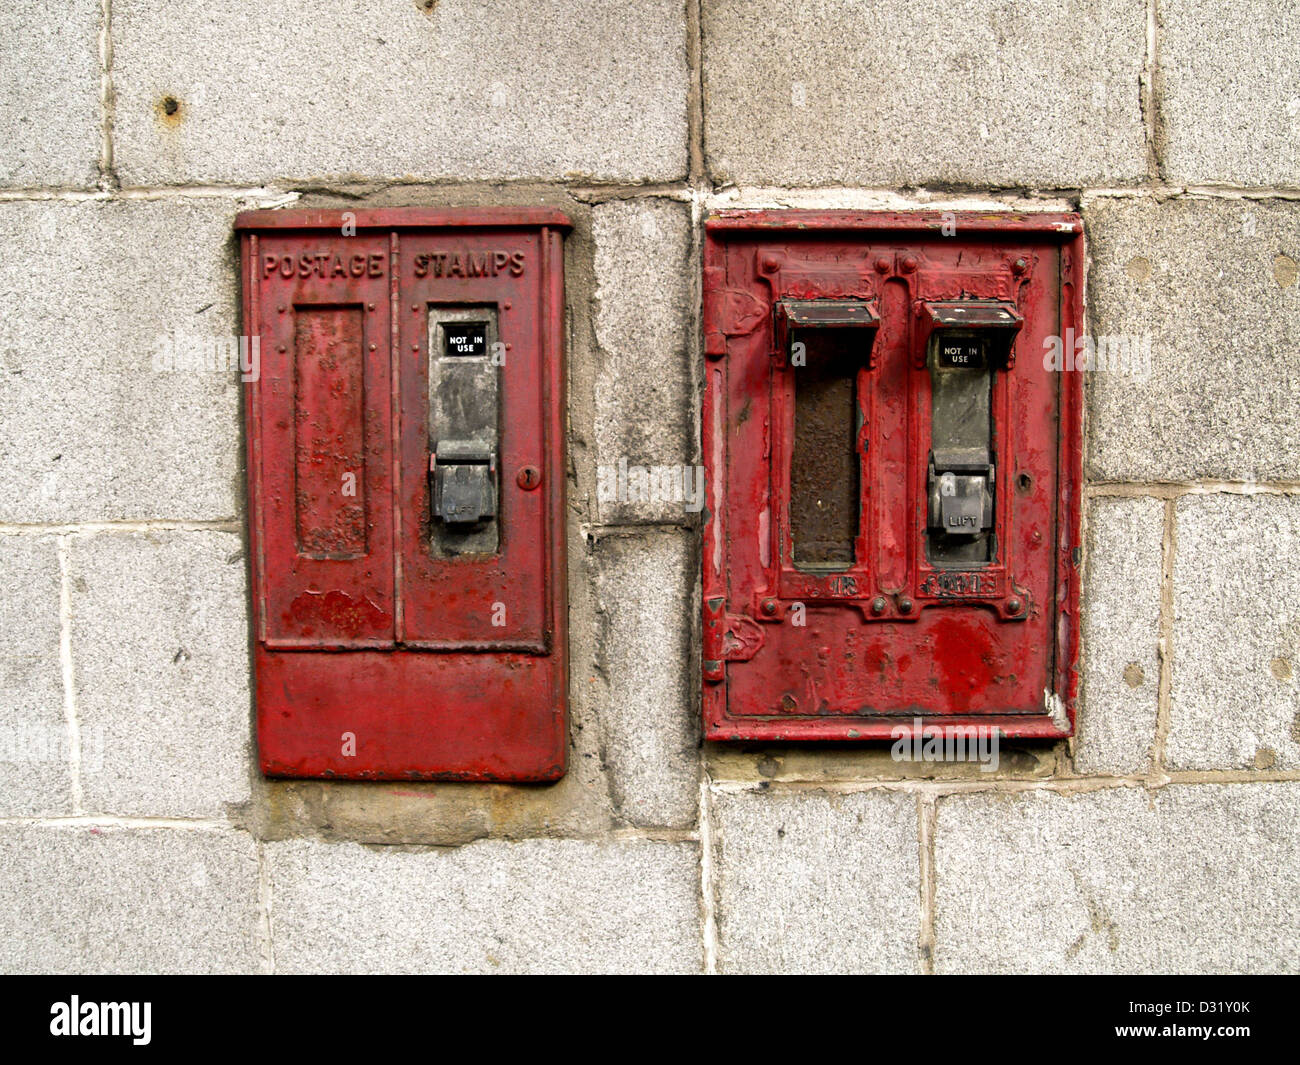 Old stamp machines and letter box's mounted on a granite wall in Aberdeen Scotland - Stock Image